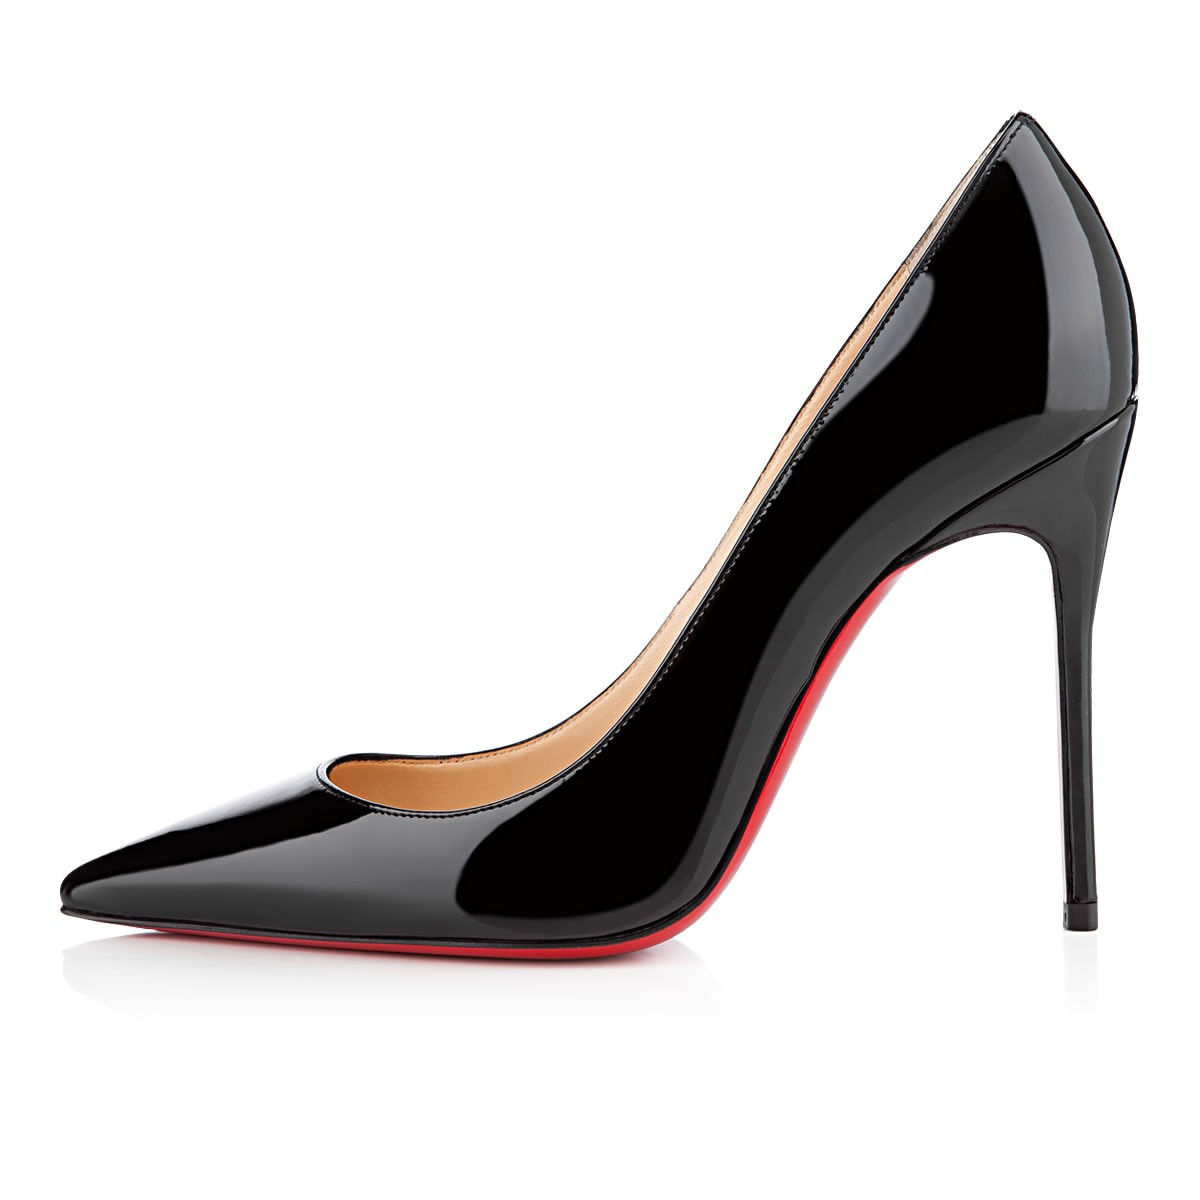 christian louboutin decollete 554 100 patent leather pumps